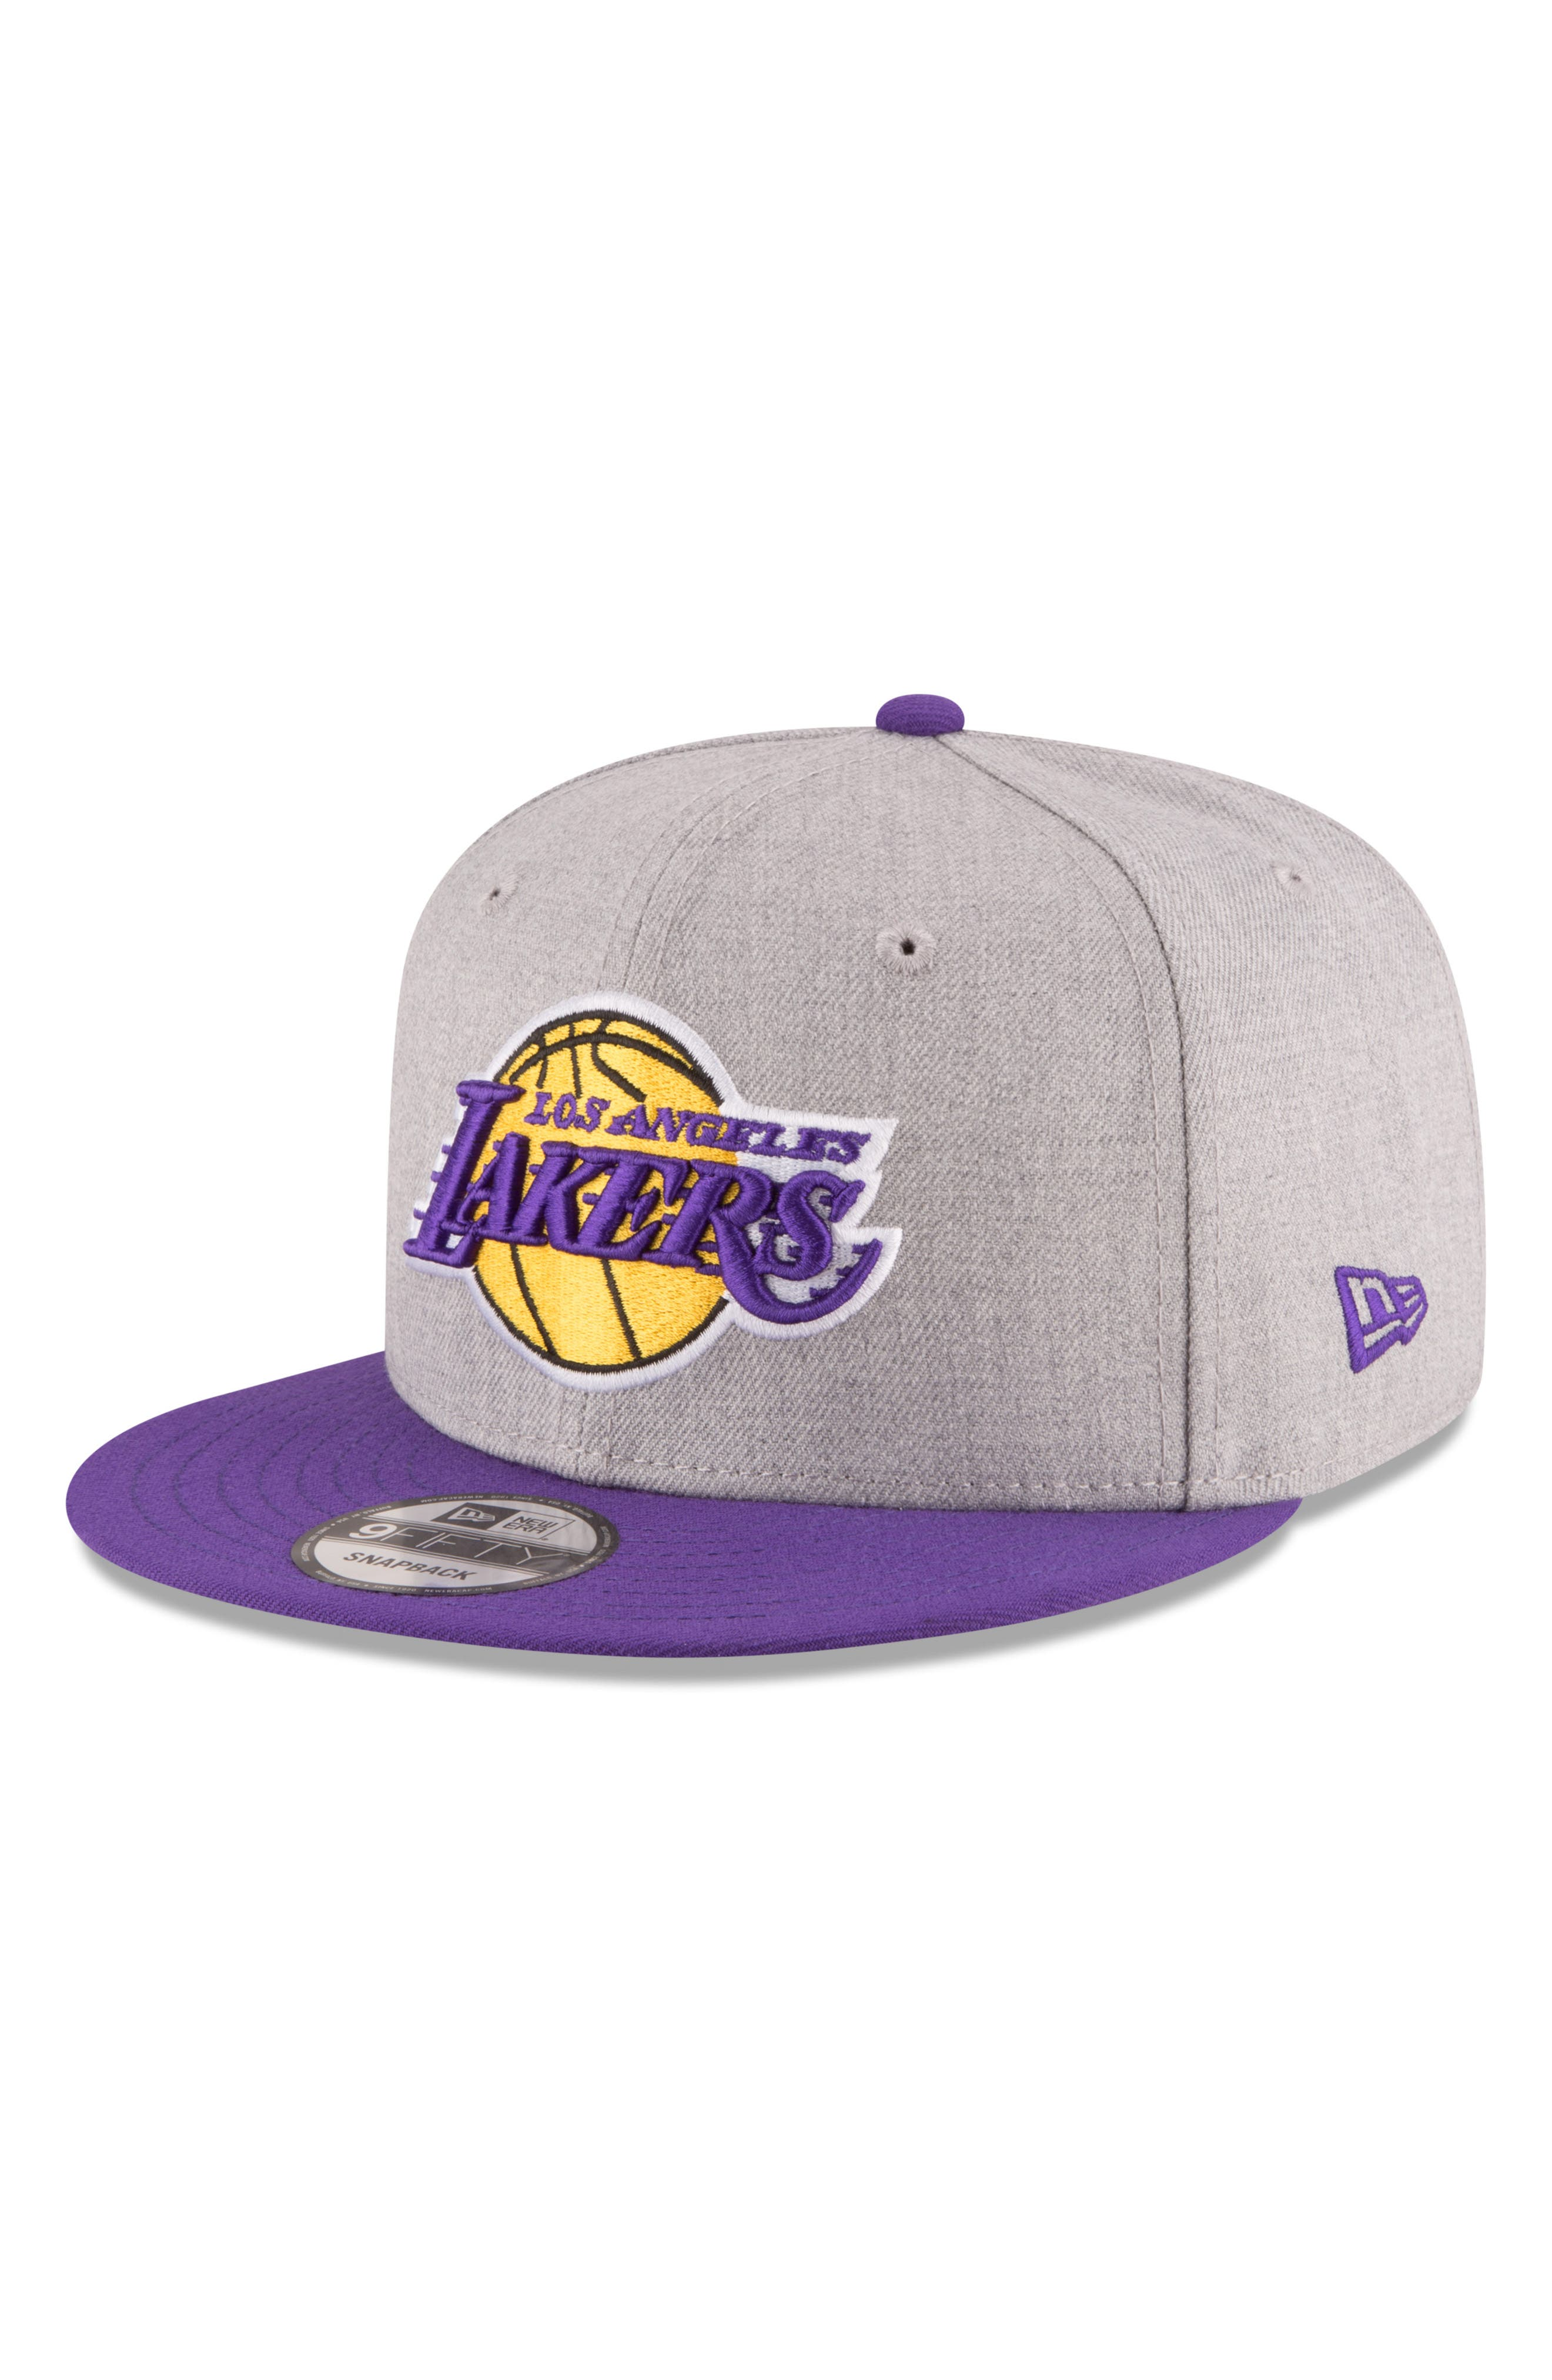 9FIFTY LA Lakers Two-Tone Cap,                         Main,                         color, 020